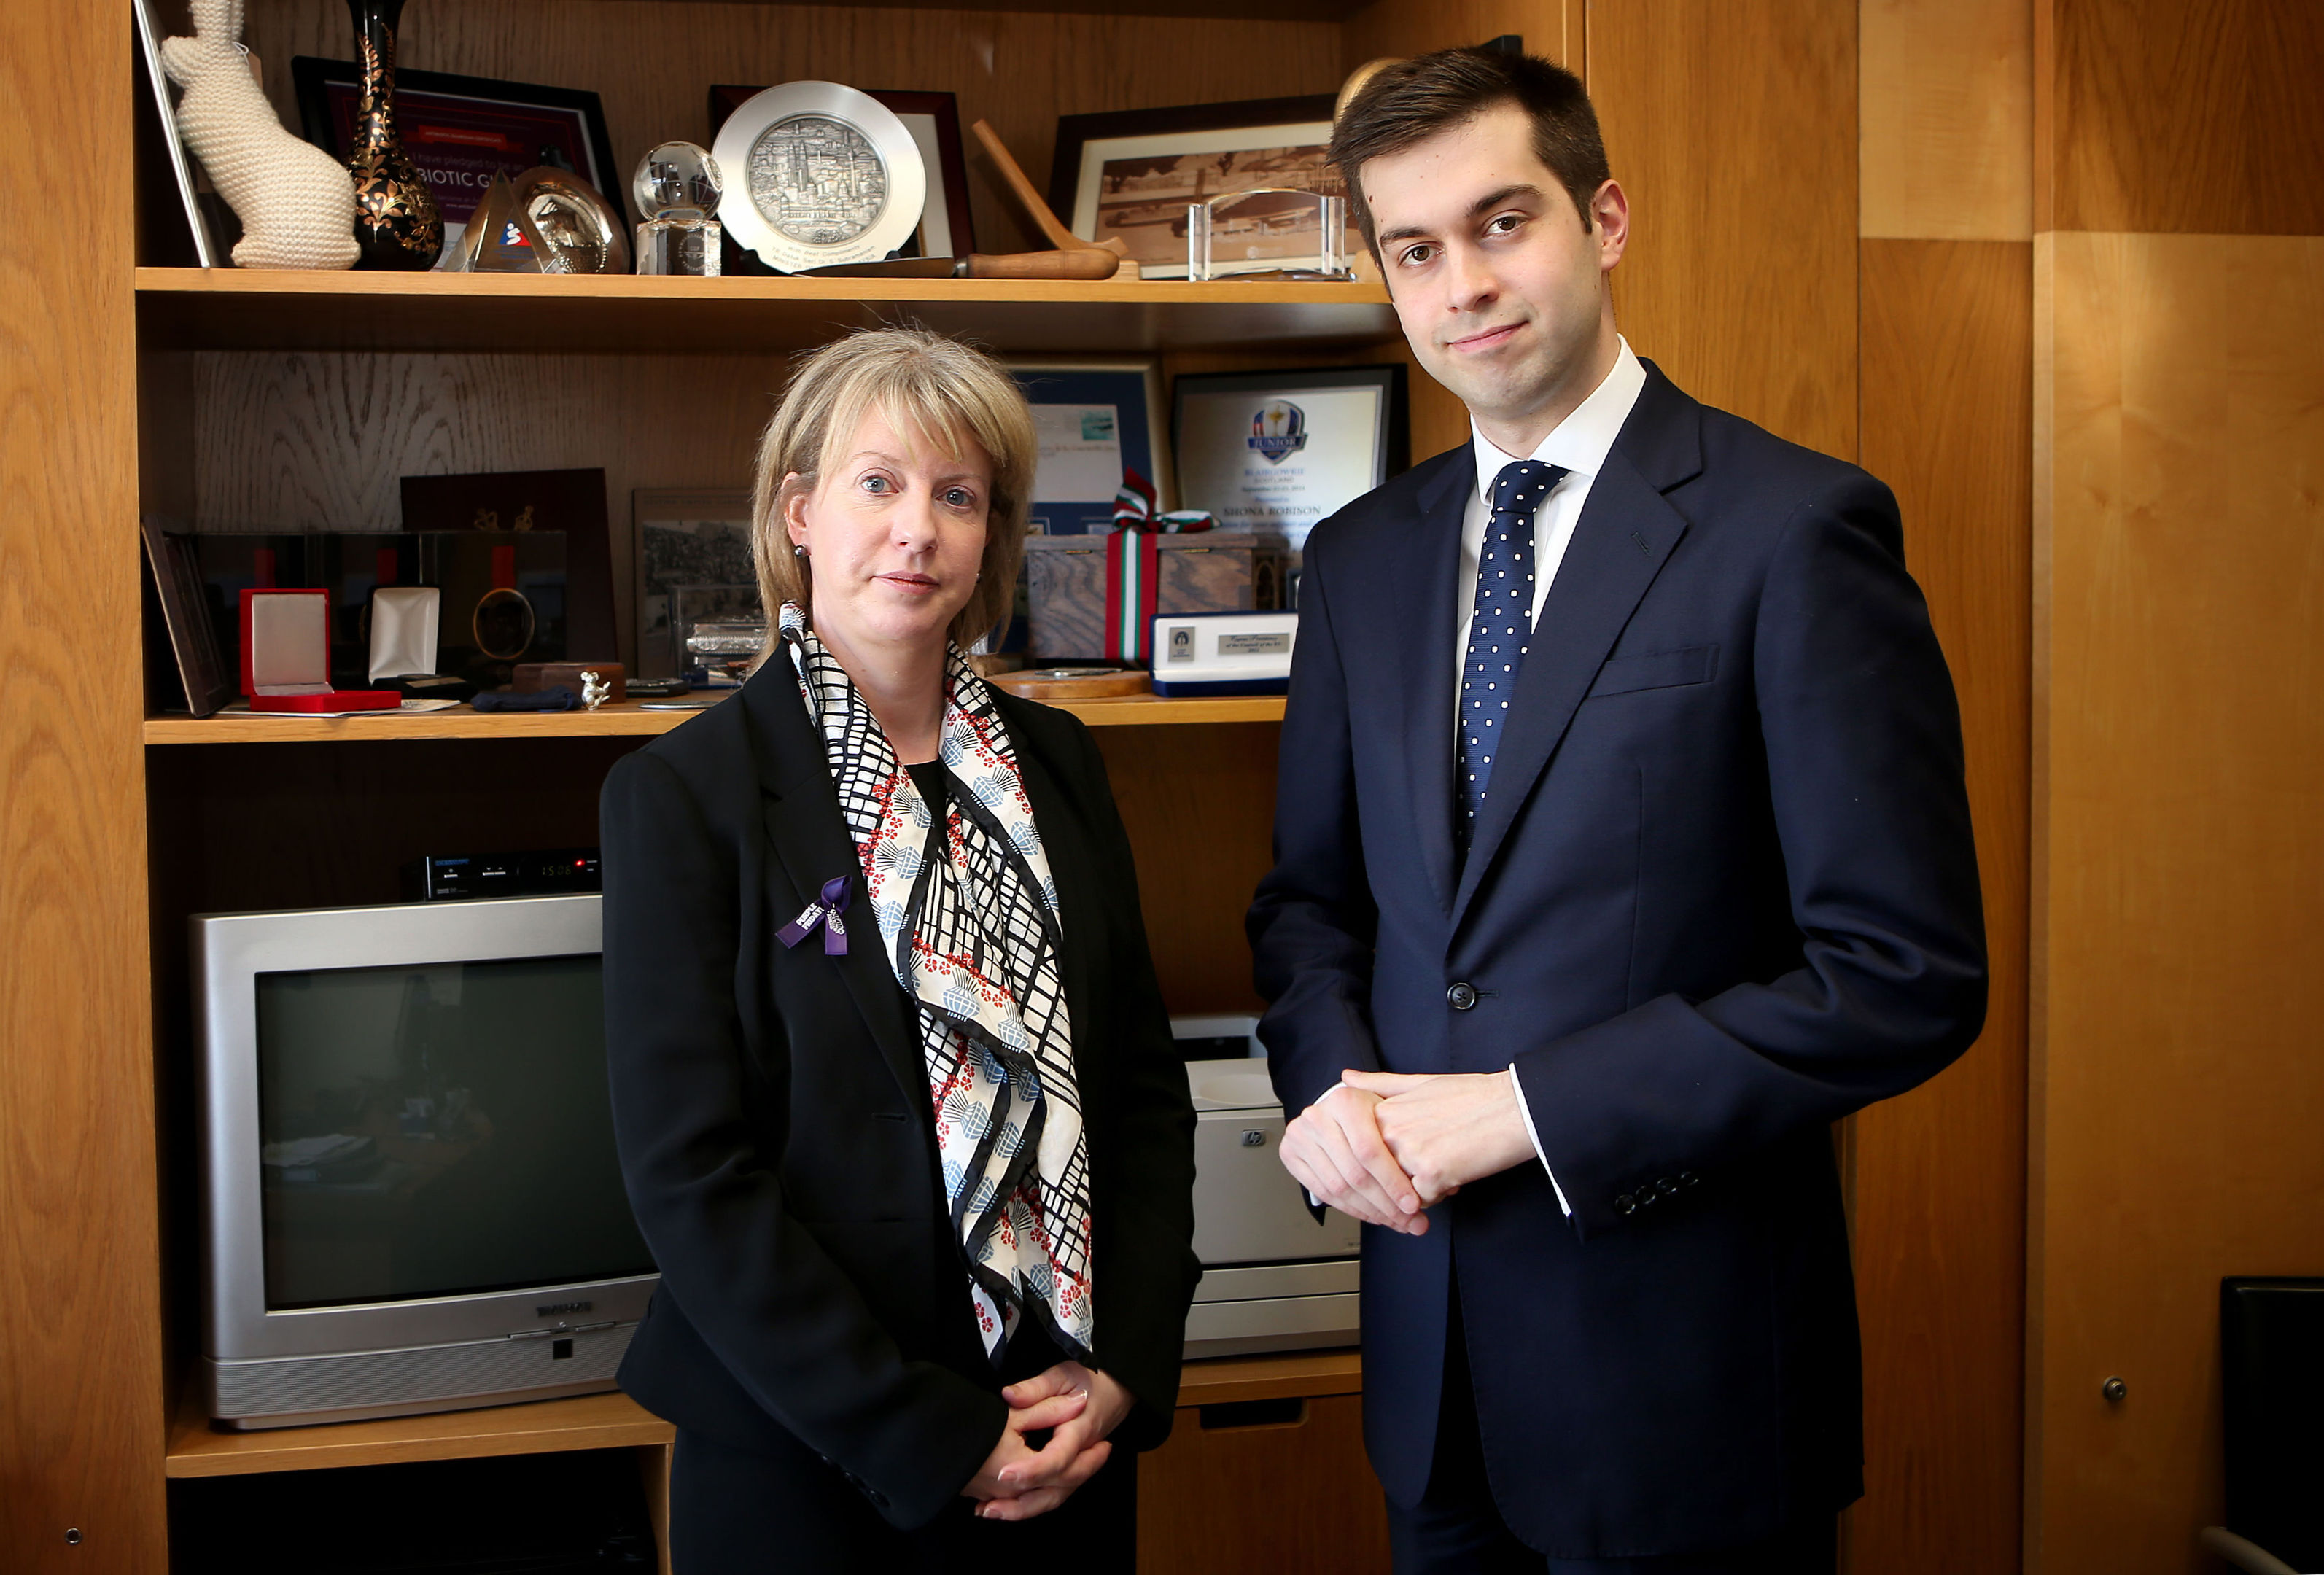 Health Secretary Shona Robison meets Joe Pike, husband of Gordon Aikman, at the Scottish Parliament, Edinburgh to announce a new £25,000 scholarship to support improvements in motor neurone disease (MND) care is to be set up (Jane Barlow/PA Wire)